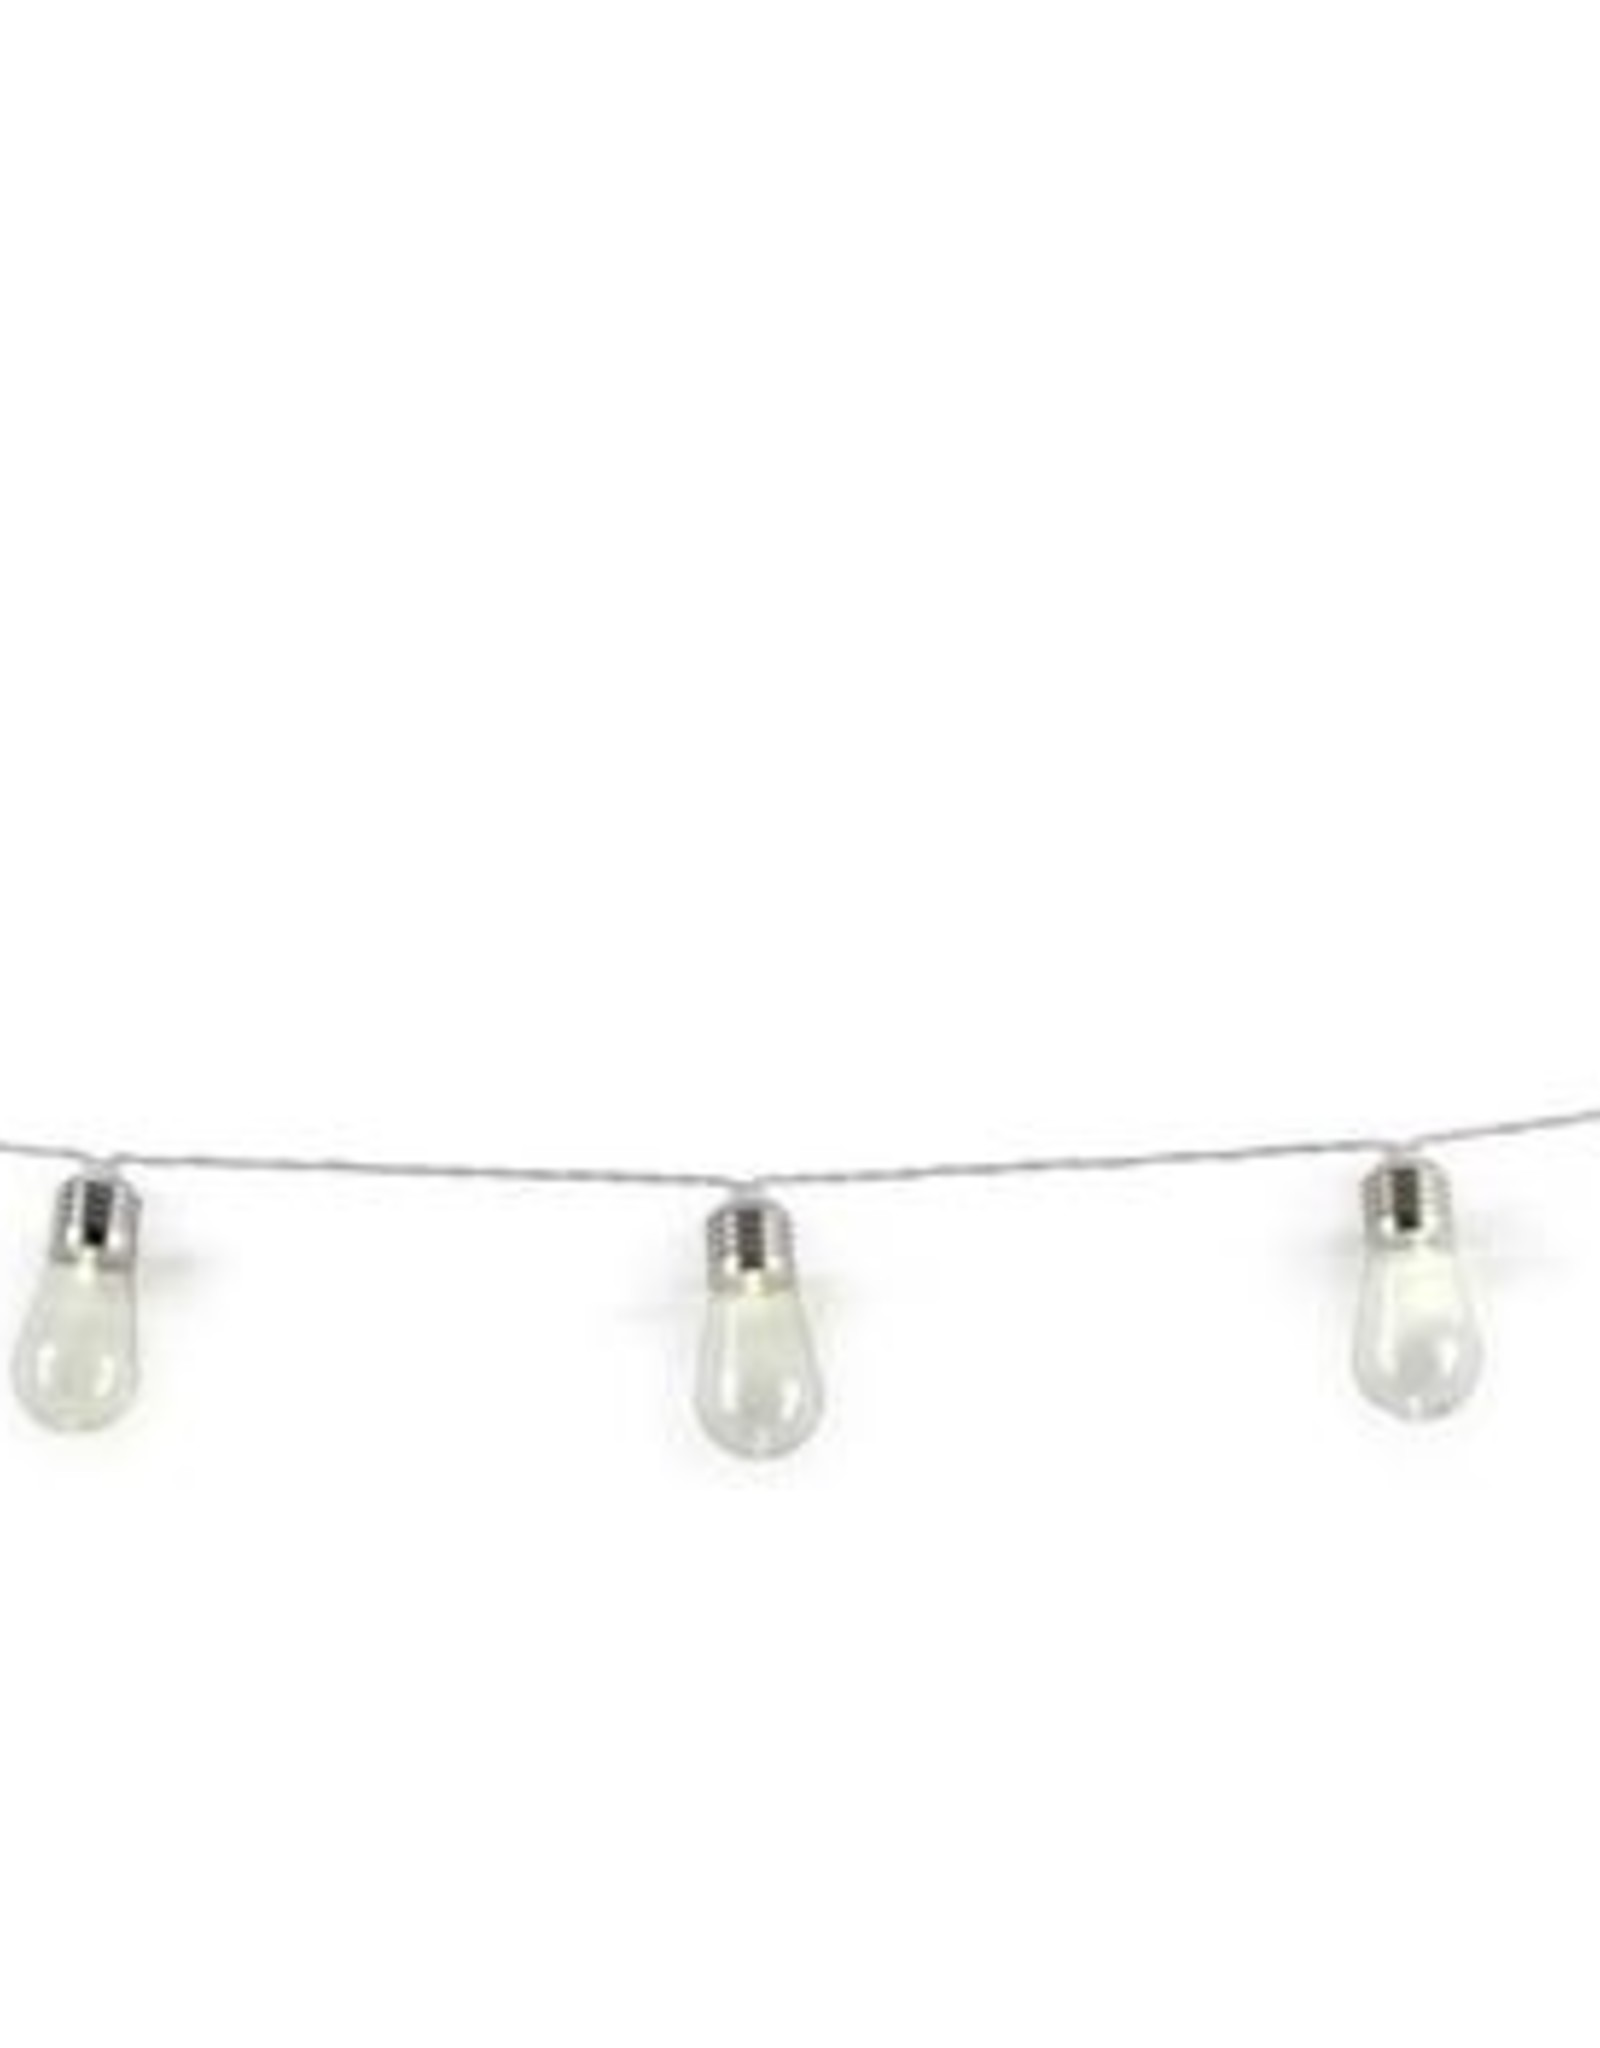 Kikkerland Edison Bulb String Lights